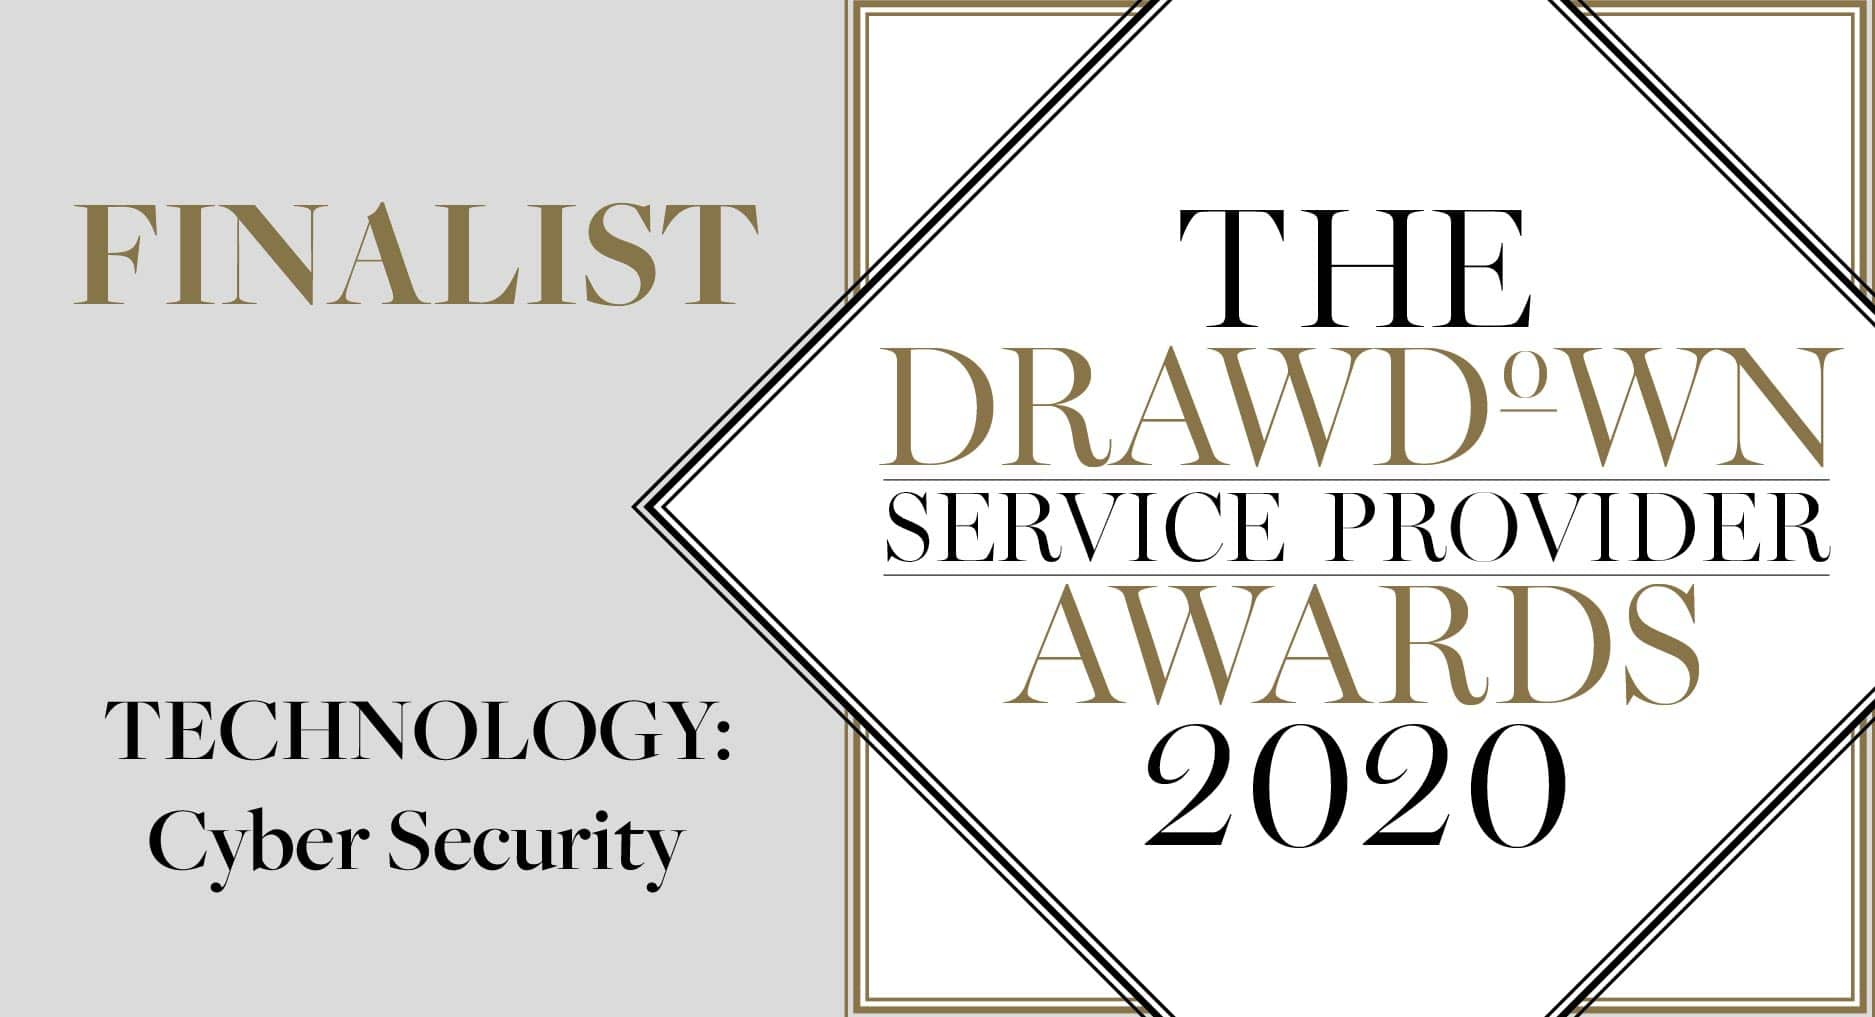 Drawdown Private Equity Service Awards